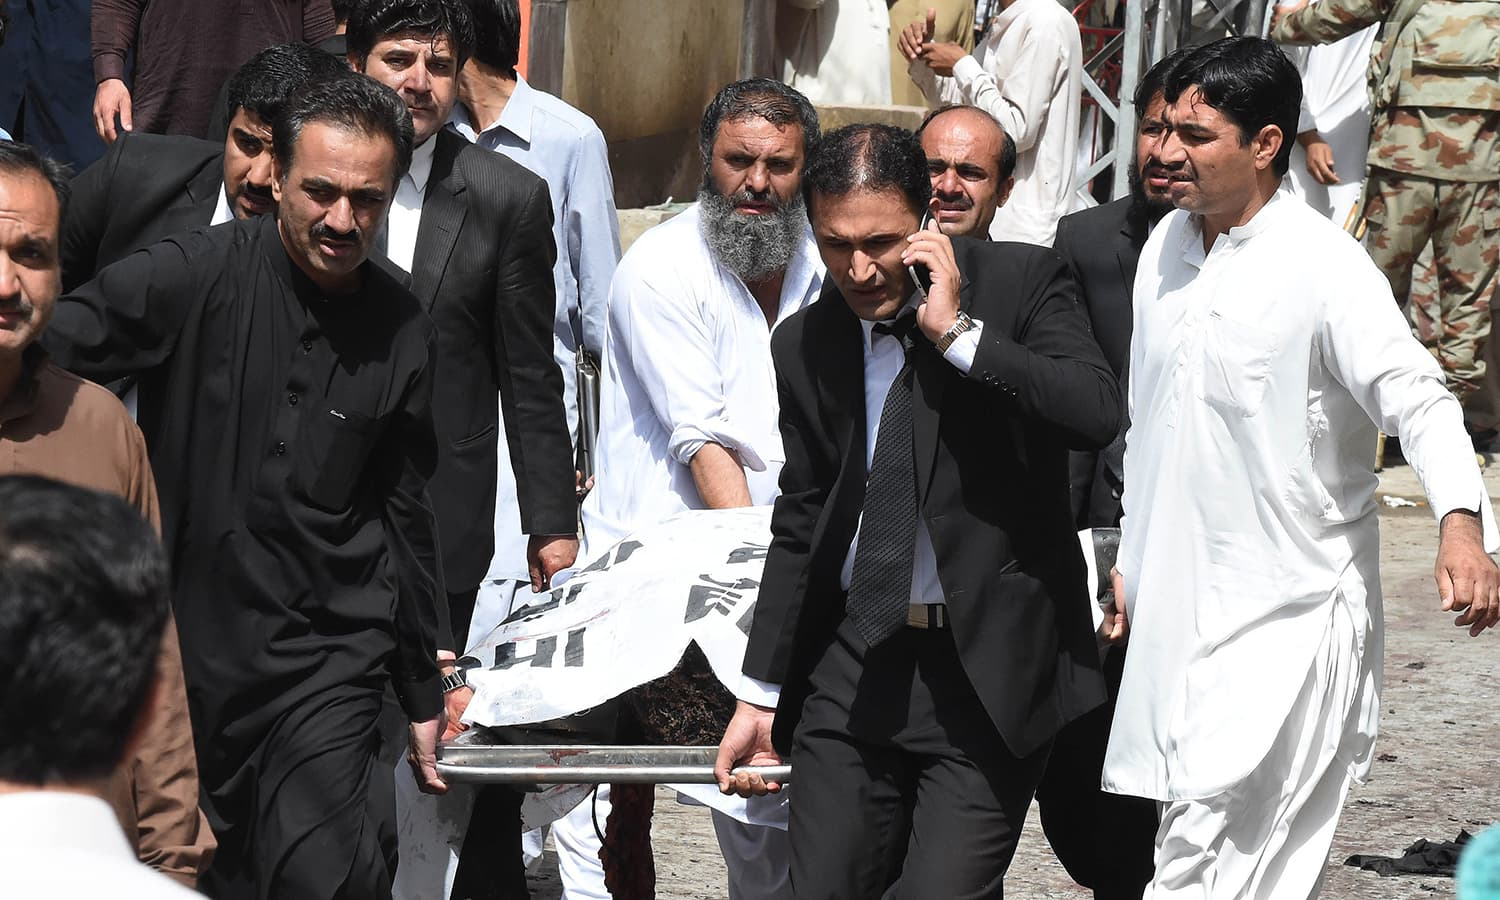 Lawyers carry the body of a colleague on a stretcher after a bomb explosion at a government hospital premises in Quetta on August 8, 2016.—AFP